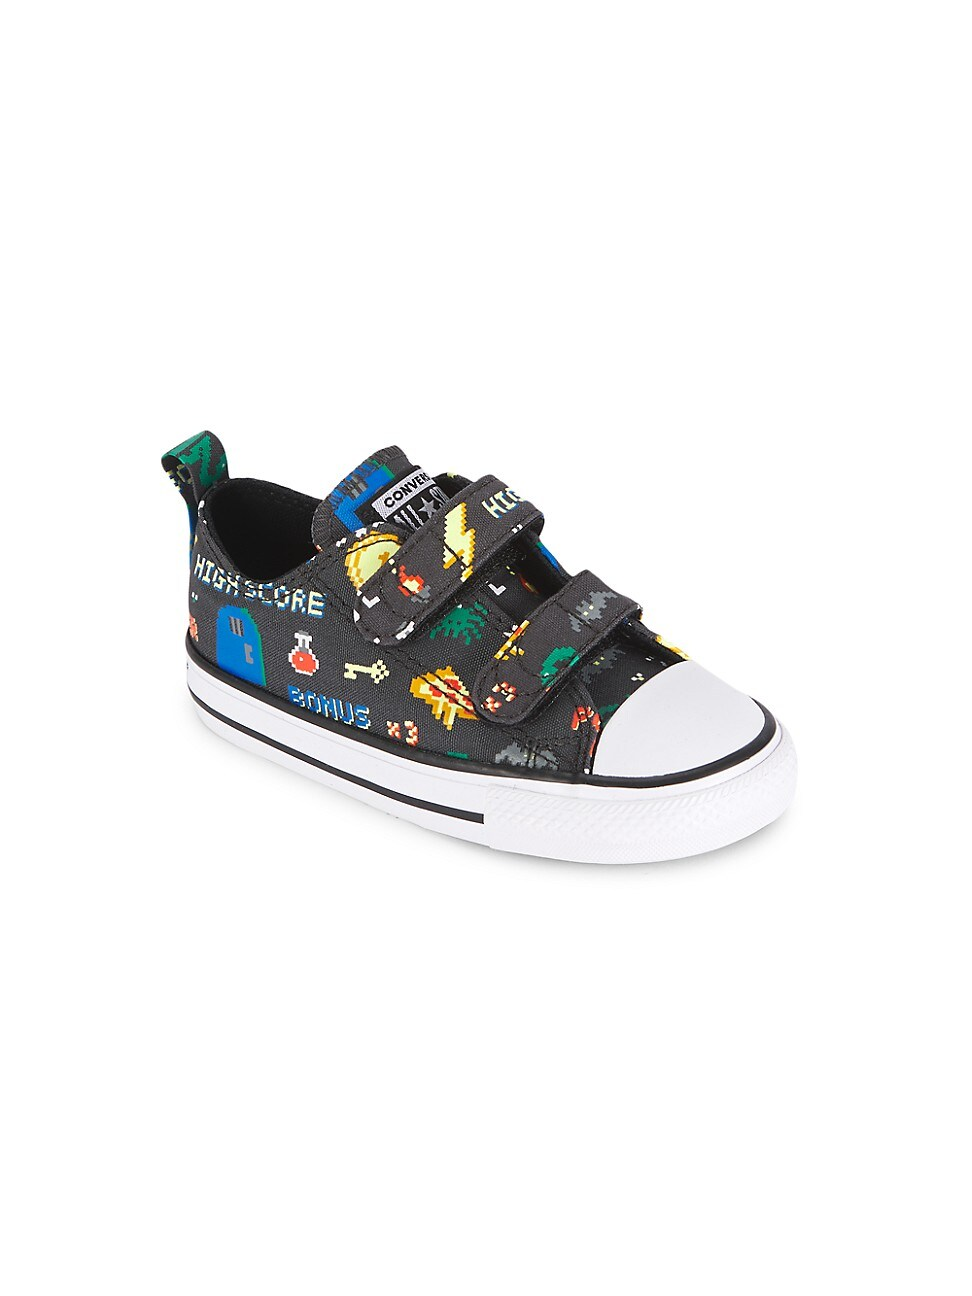 Converse Activewears LITTLE BOY'S & BOY'S GAMER ALL STAR SNEAKERS